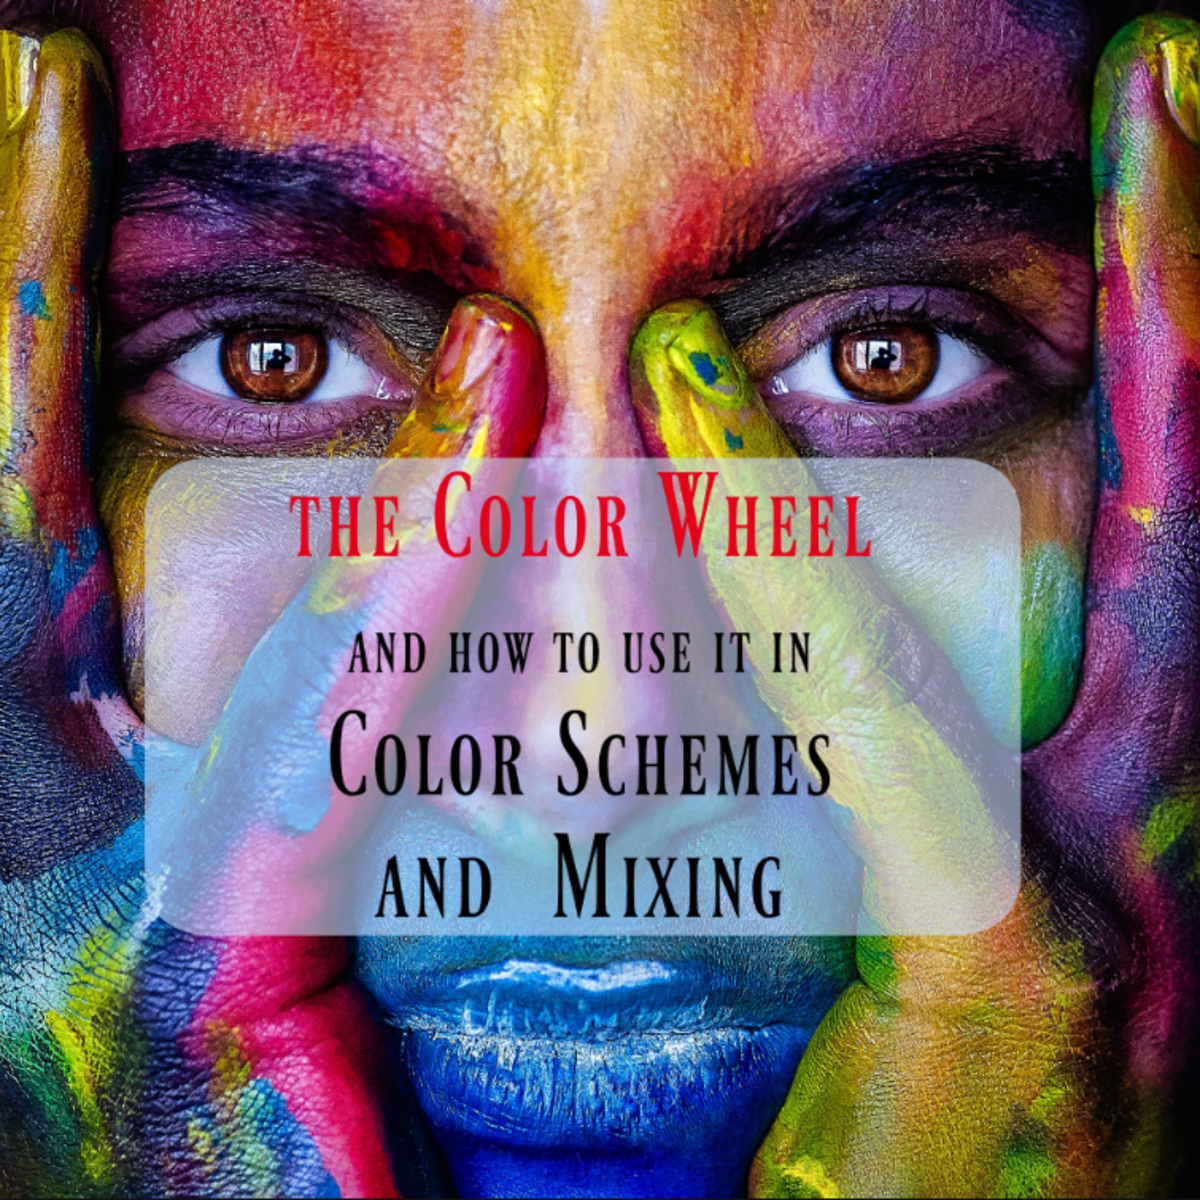 How To Use The Color Wheel To Plan Color Schemes And Color Mixing Feltmagnet Crafts